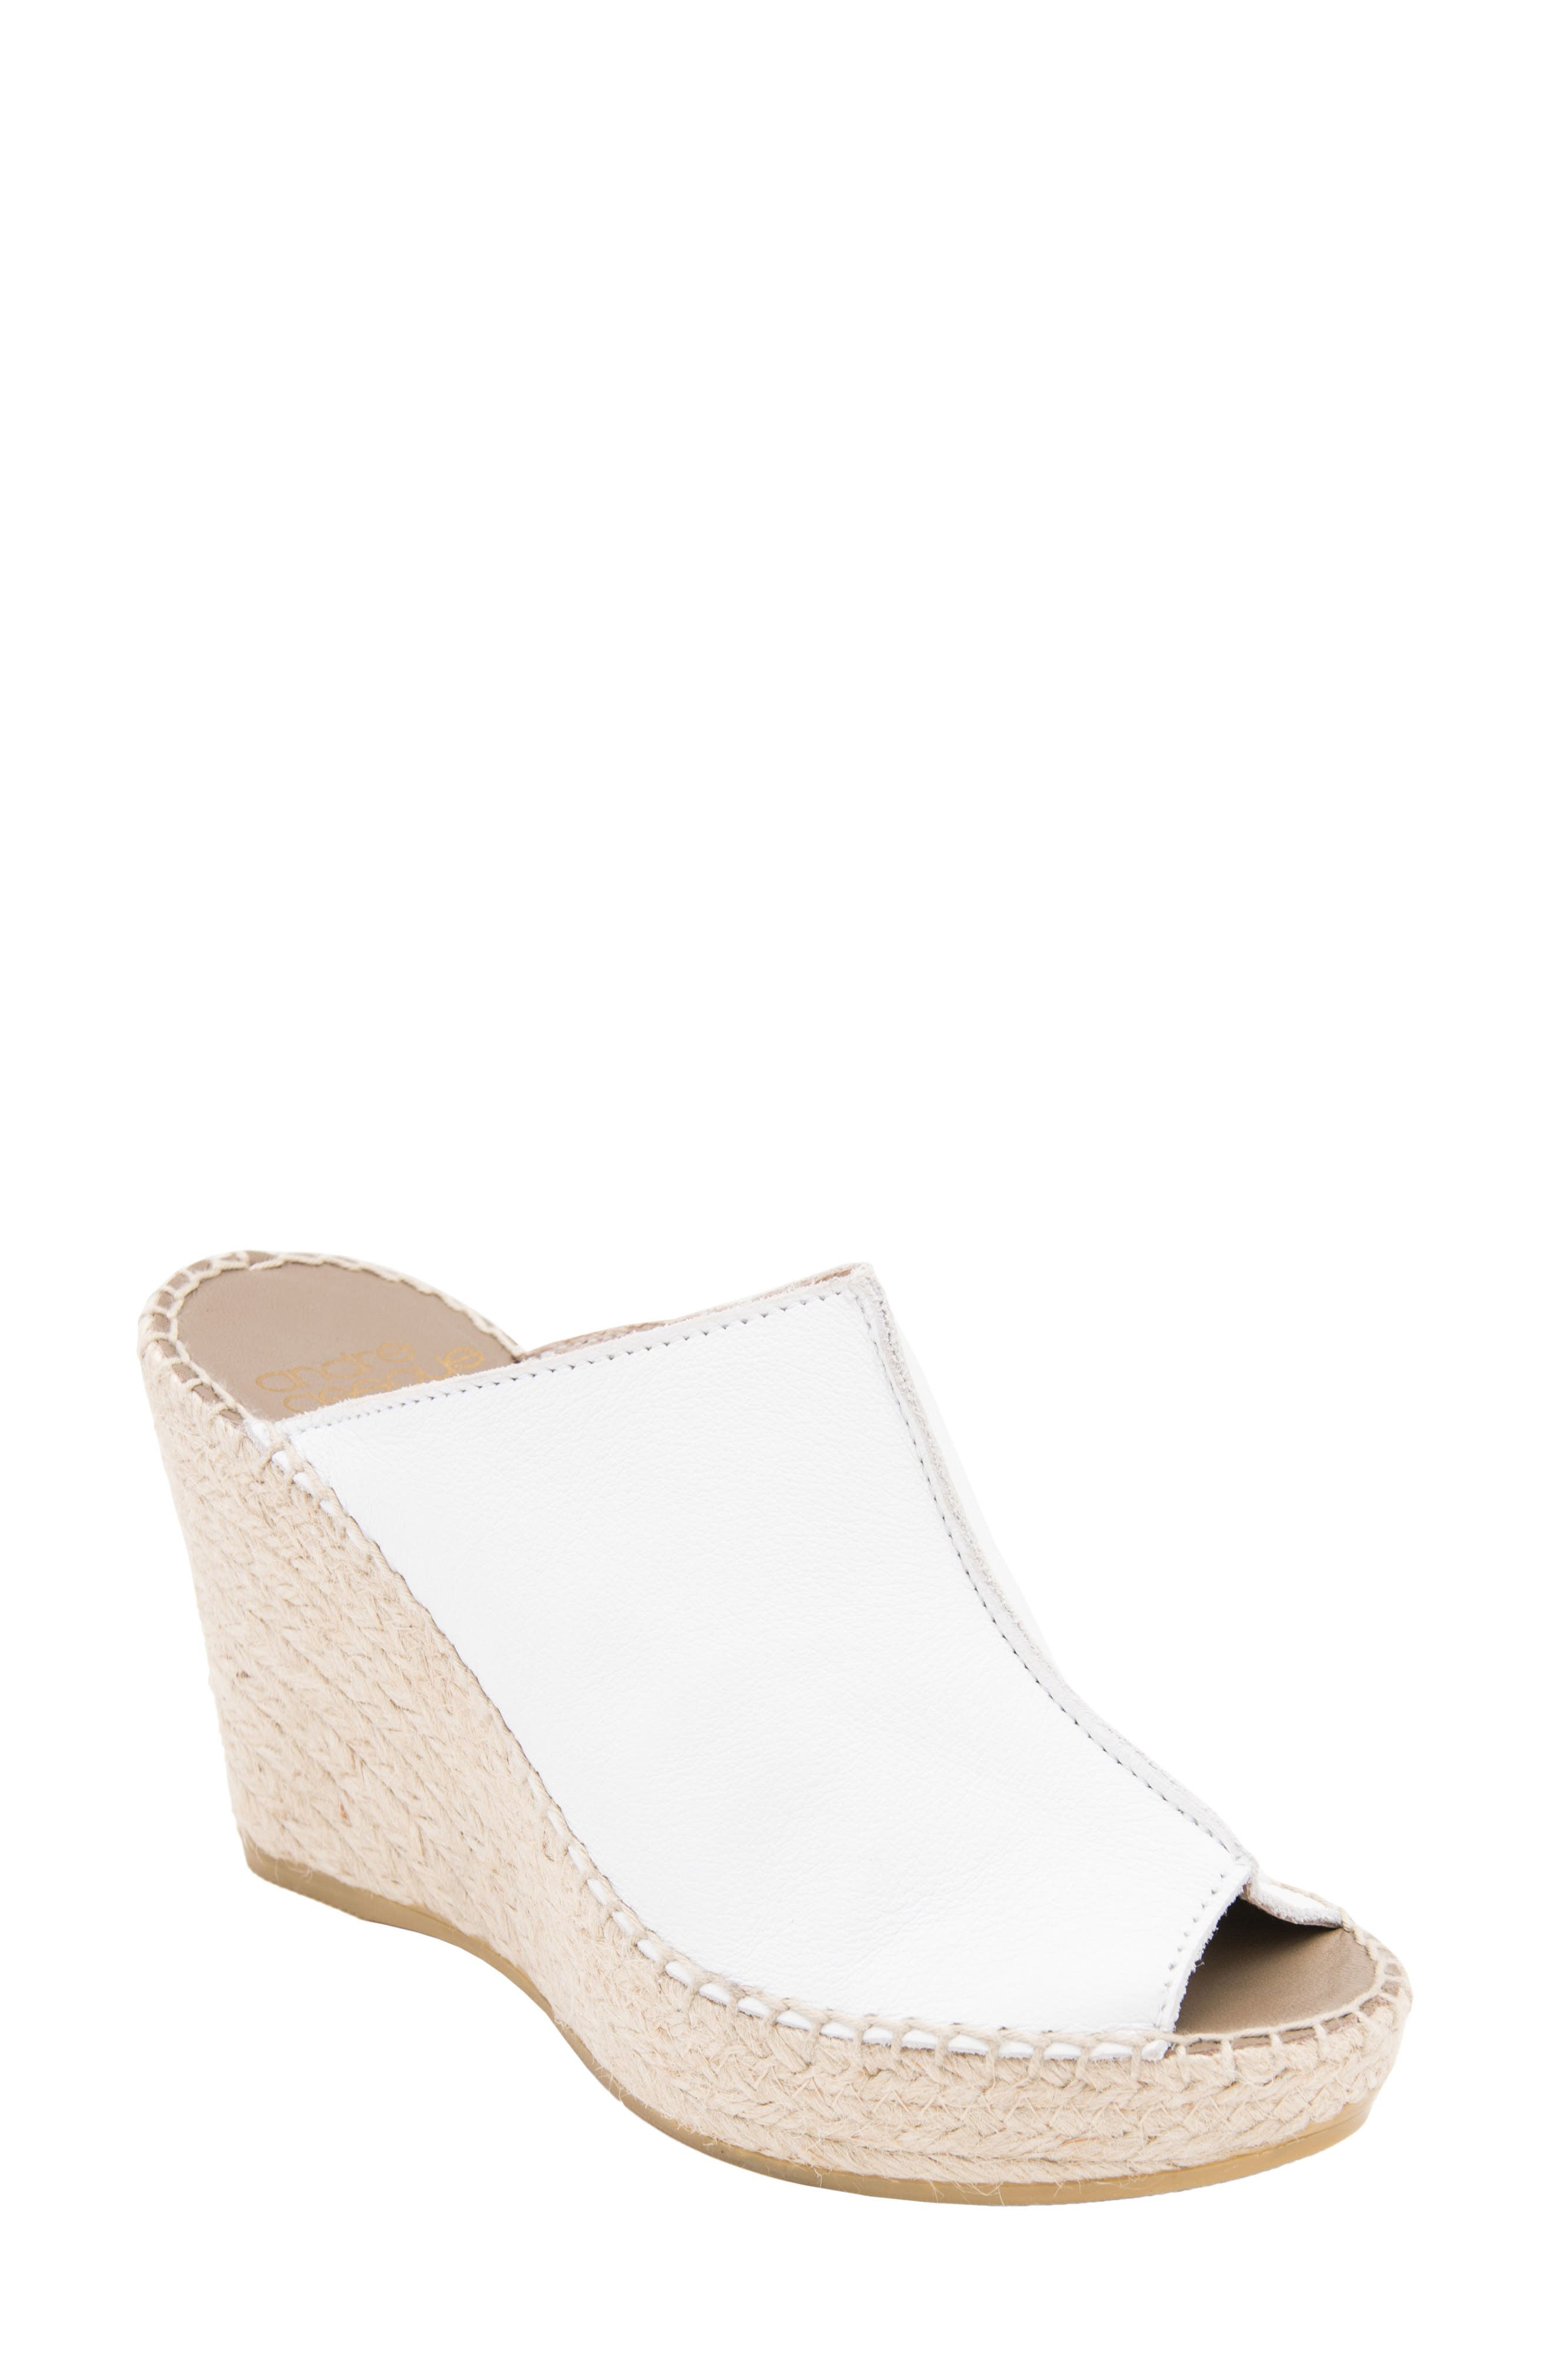 Andre Assous Cici Espadrille Wedge, White